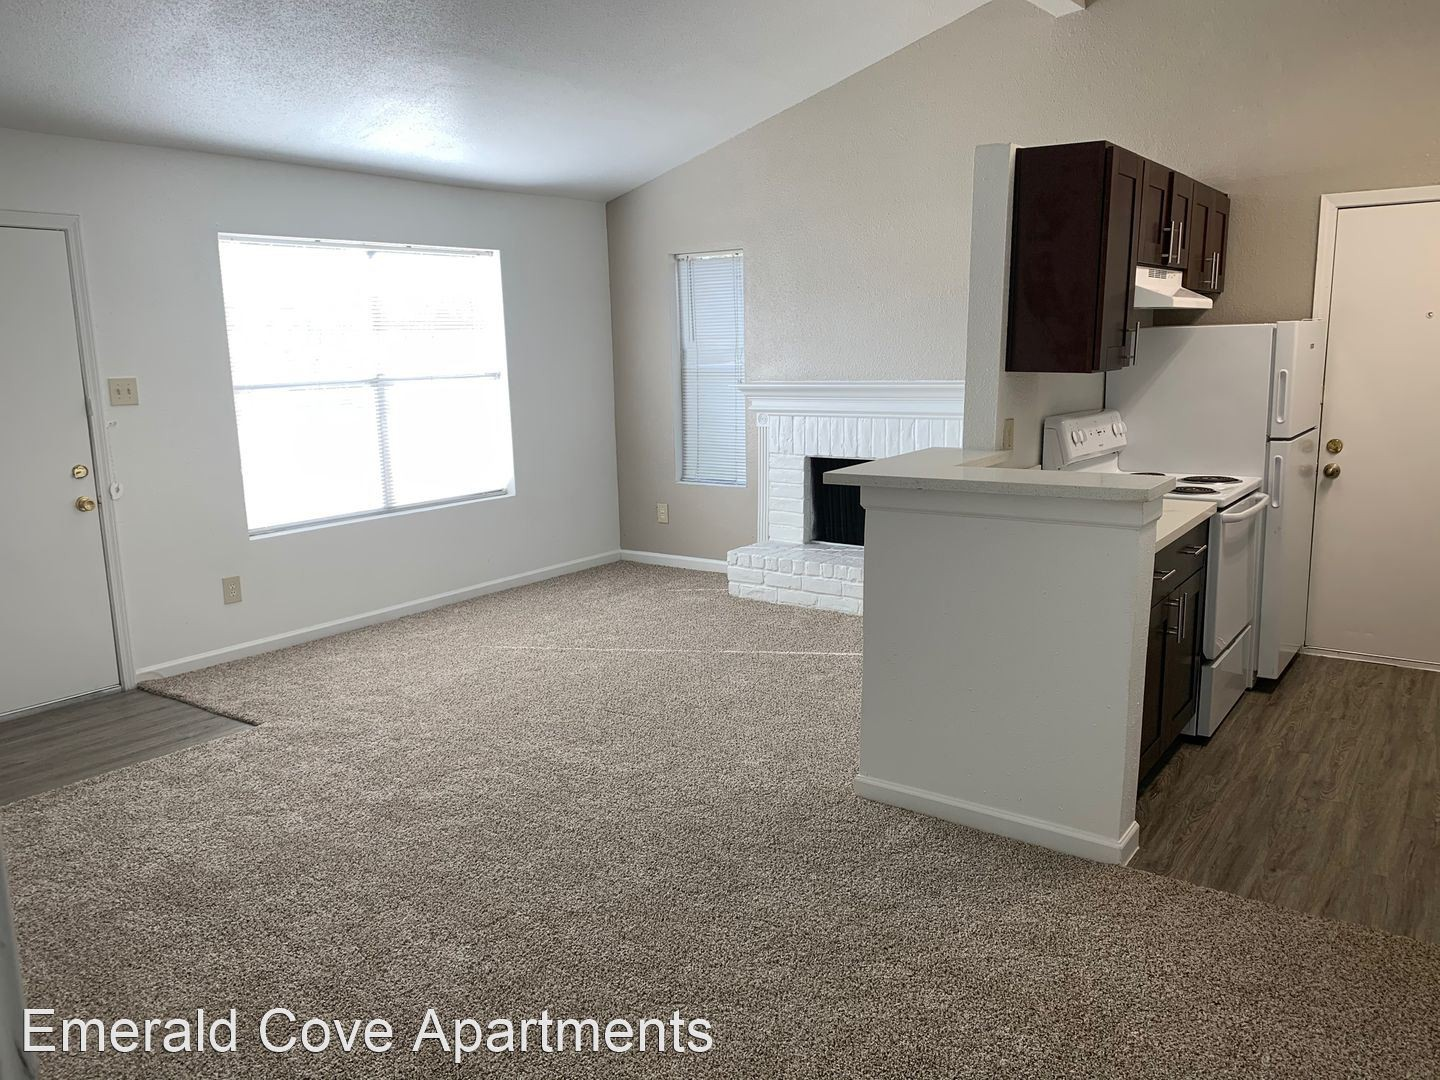 Apartments Near NHMCC Emerald Cove for North Harris Montgomery Community College Students in The Woodlands, TX